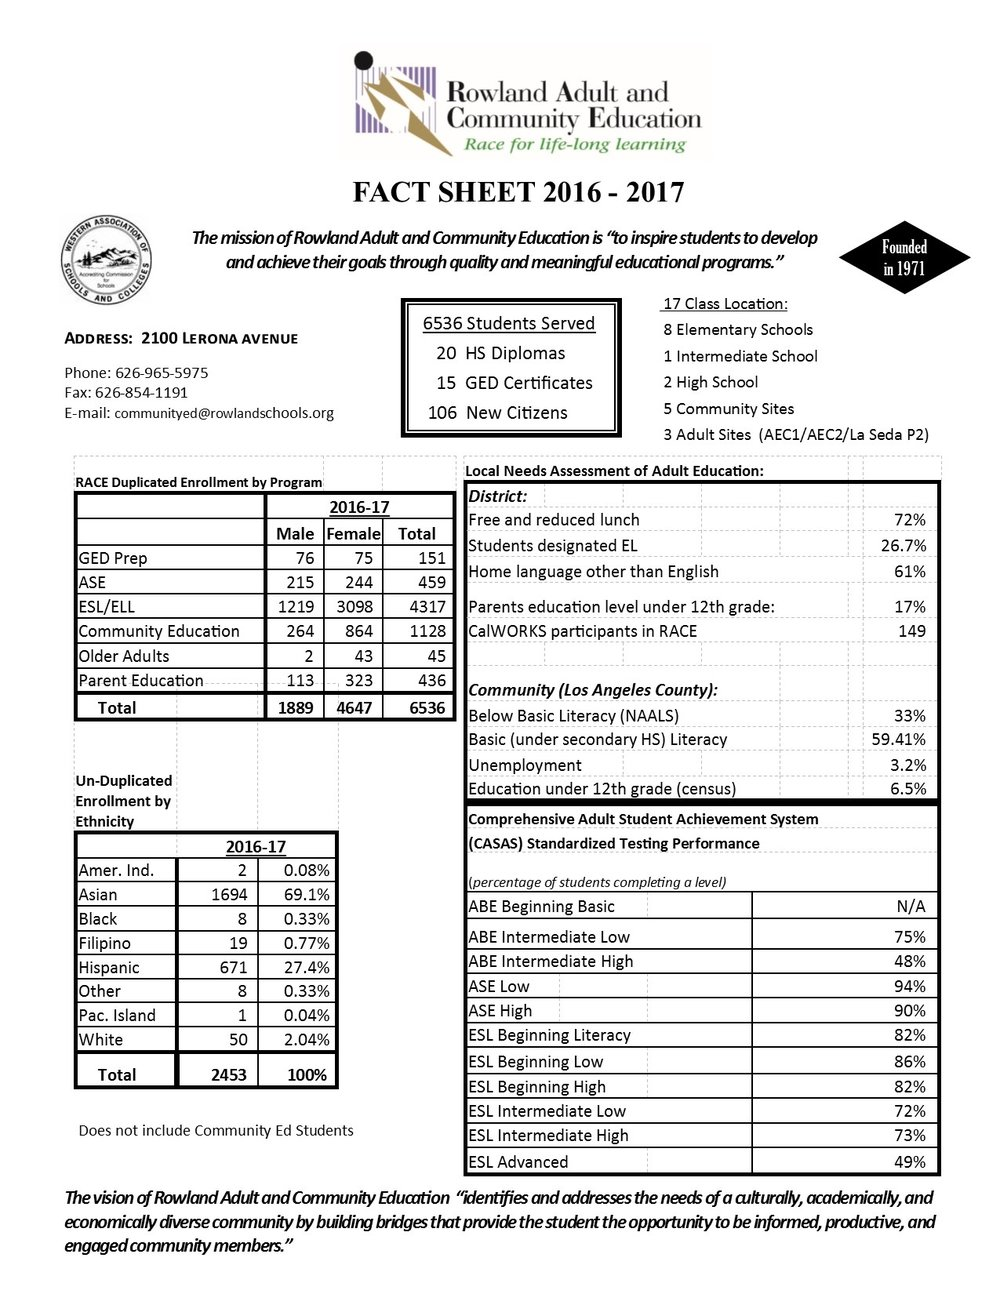 RACE Adult School Fact Sheet 2016-17.jpg